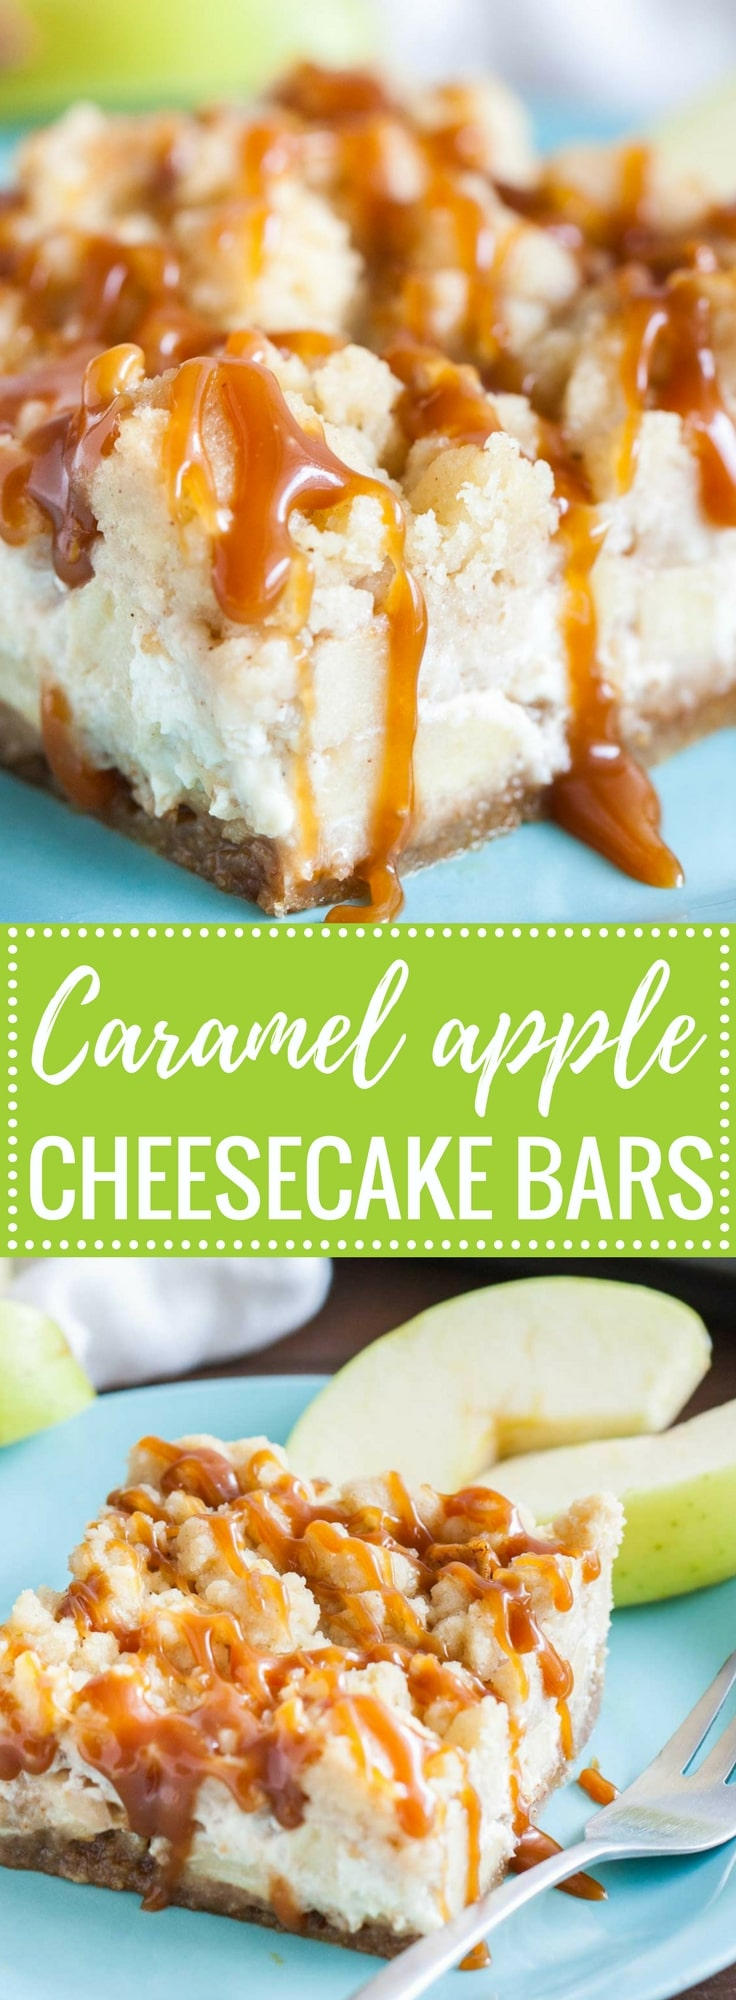 Easy Caramel Apple Cheesecake Bars have three delicious layers and are a perfect fall dessert! A graham cracker crust topped with a creamy cheesecake layer loaded with cinnamon spiced apples and cookie-like streusel and salted caramel on top.